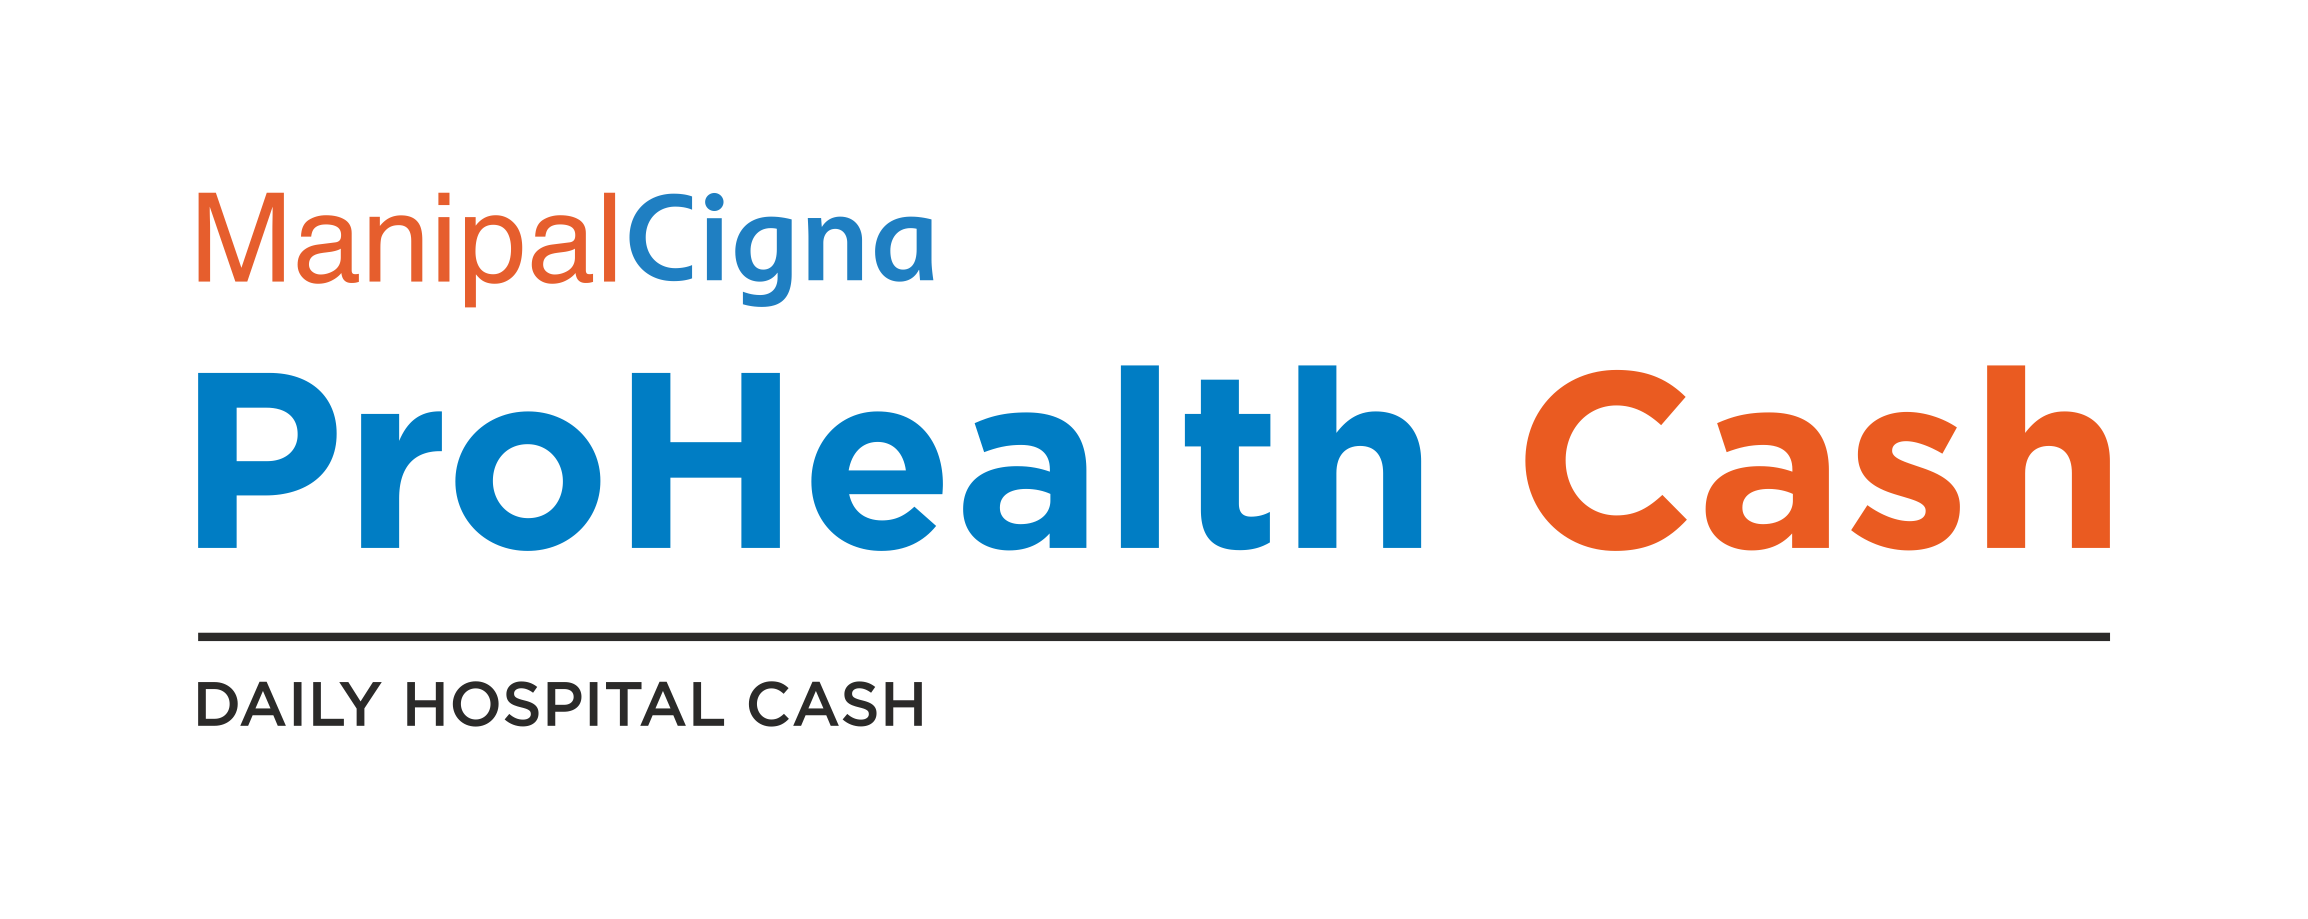 Prohealth Cash